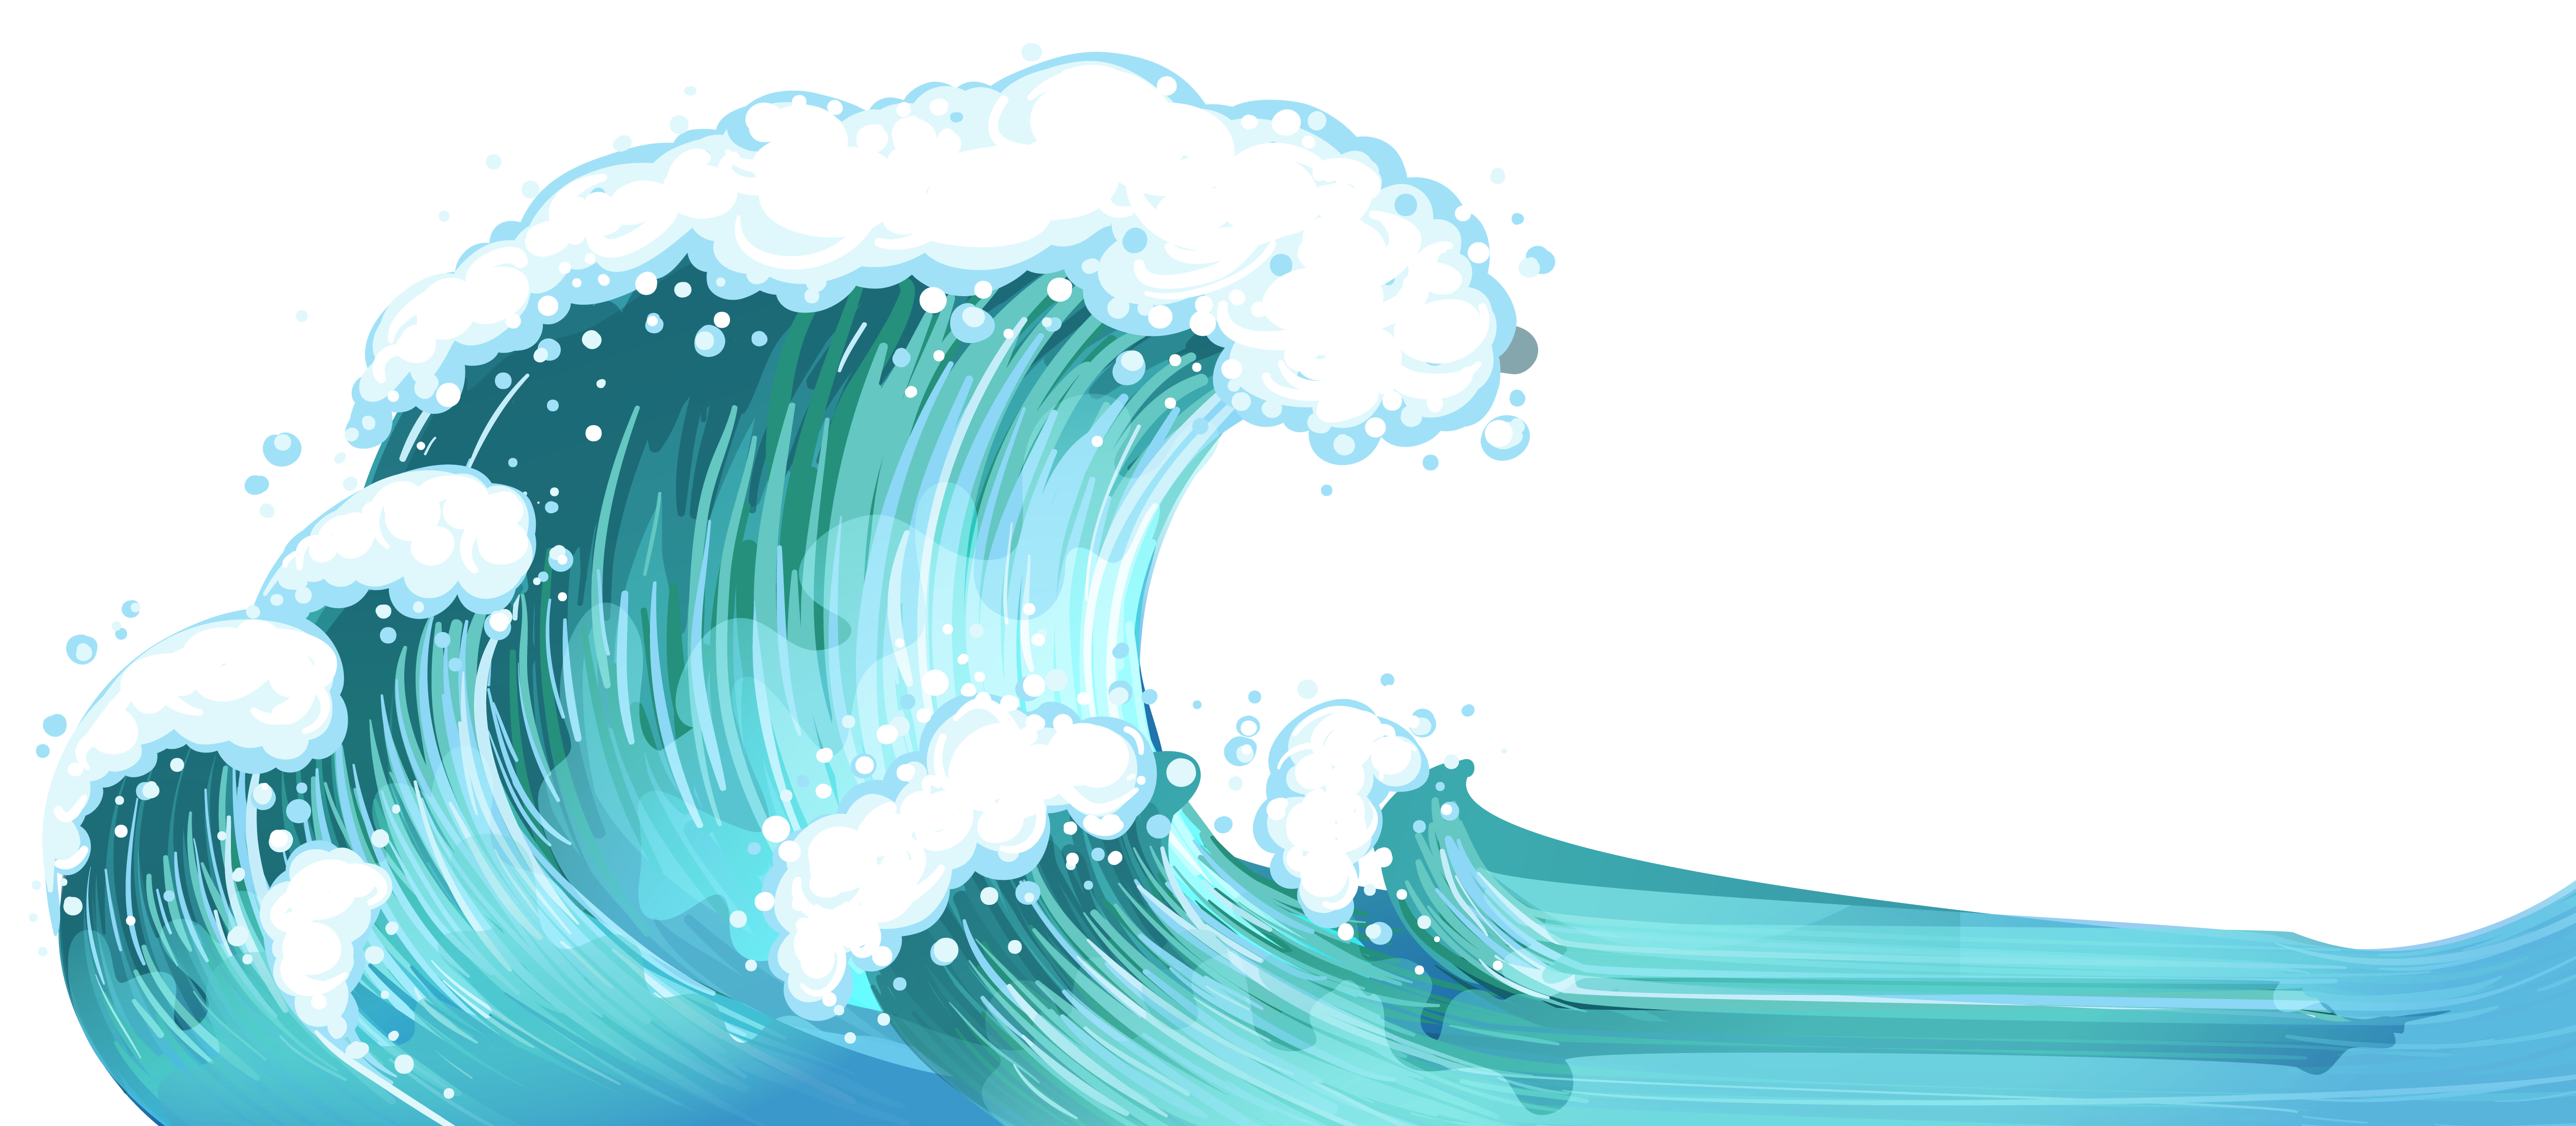 Moana clipart wave, Moana wave Transparent FREE for download